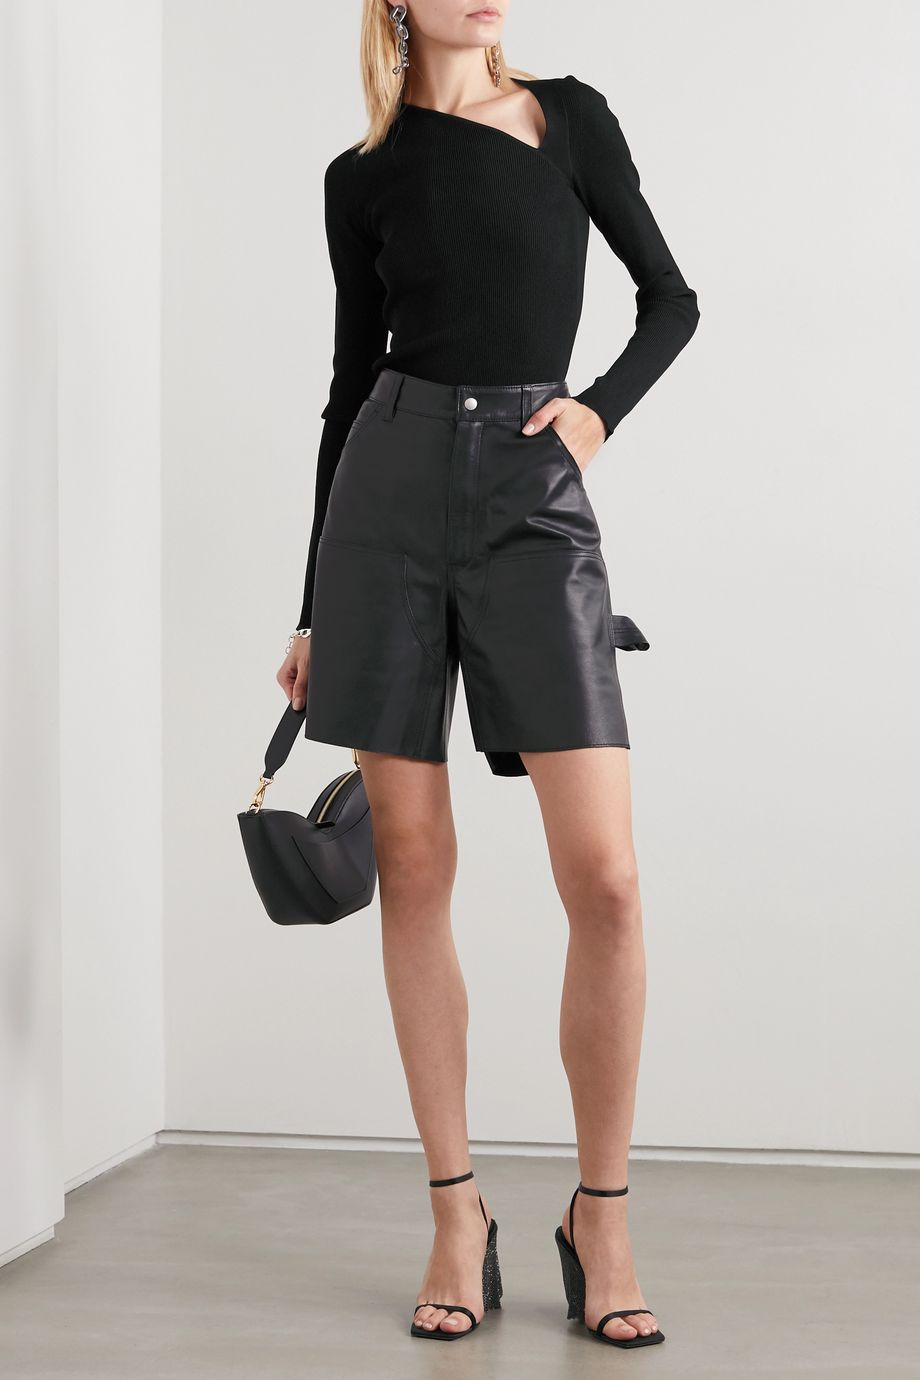 Unravel Project Leather shorts